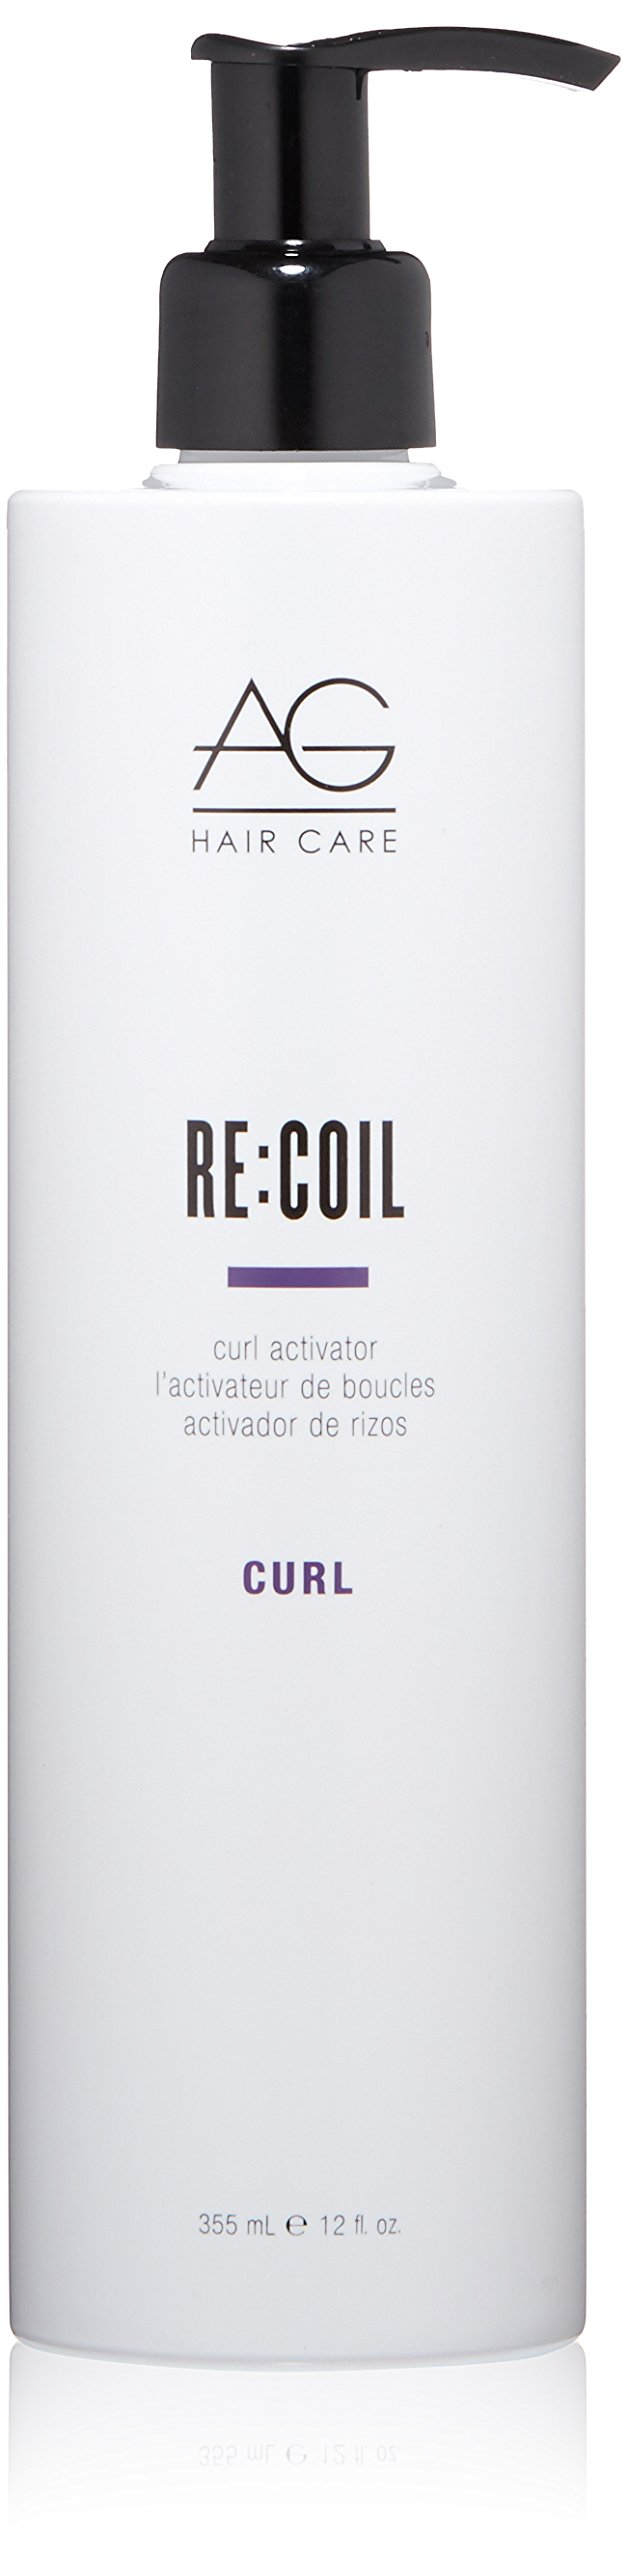 AG Hair Curl Re:Coil Curl Activator by AG